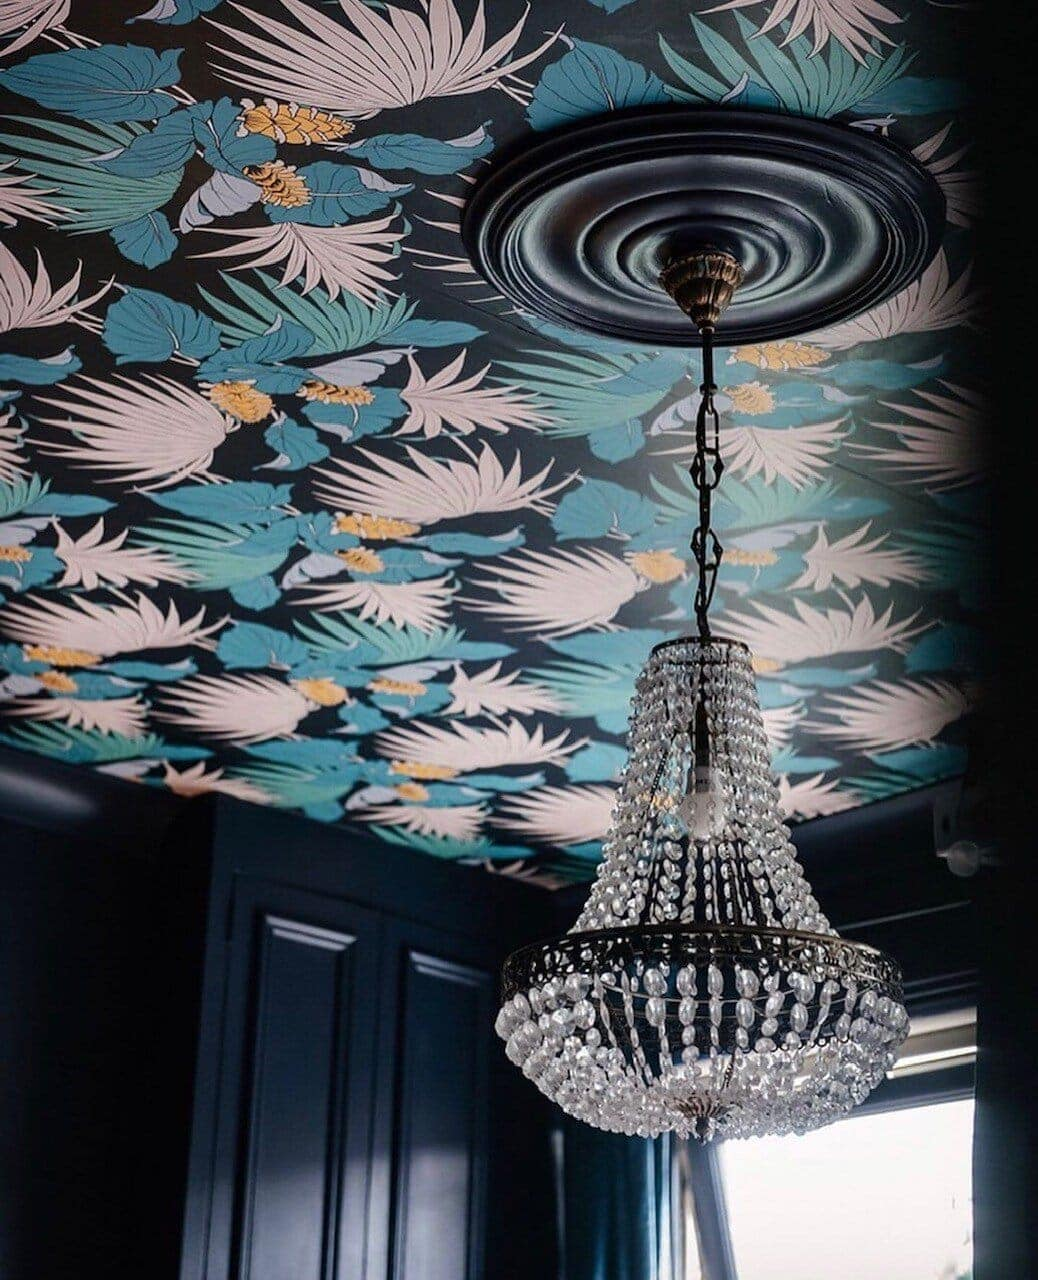 The chandelier adds a touch of glamour and contrast to the whimsical wallpaper